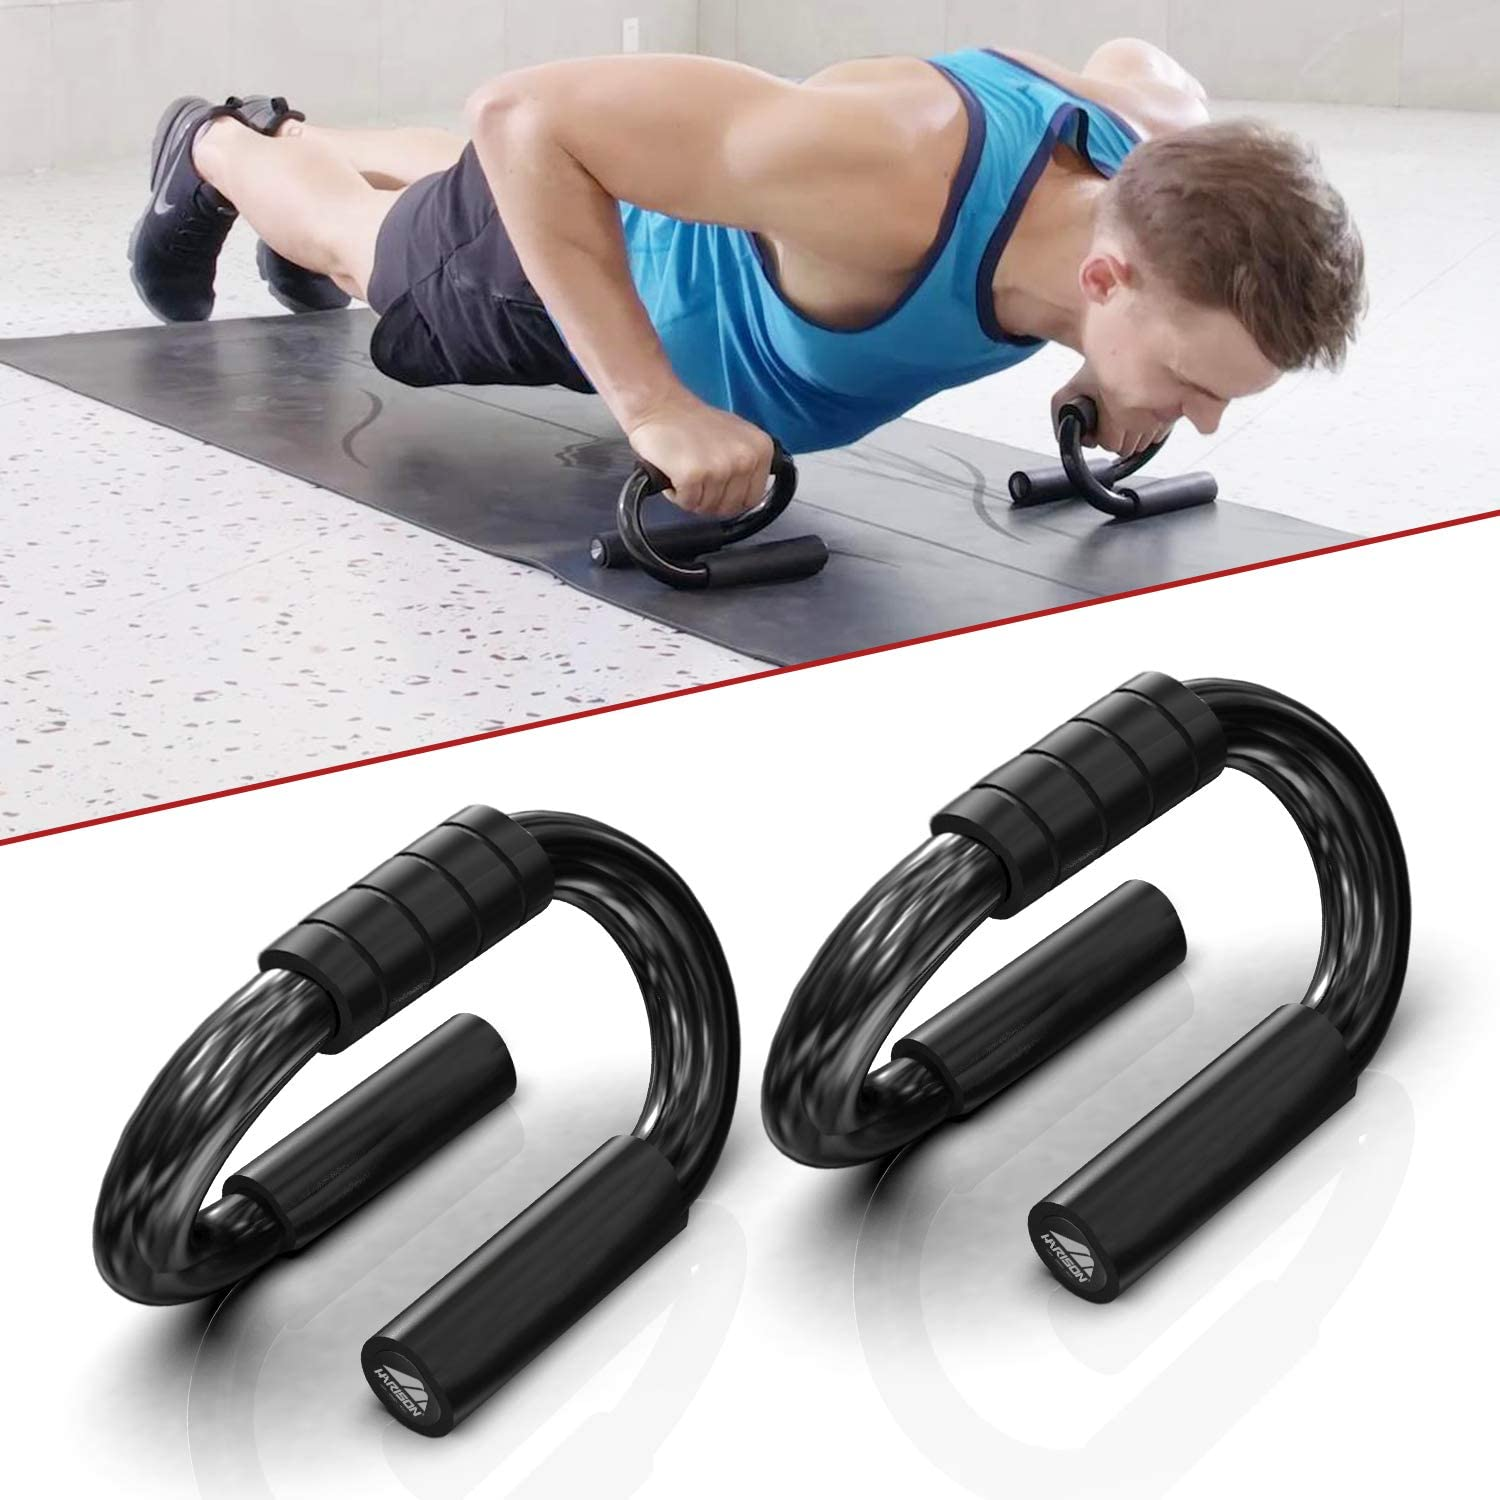 1 Pair Push Up Bars Exercise Stands Gym Home Grip Sponge Hand Set Training Kit